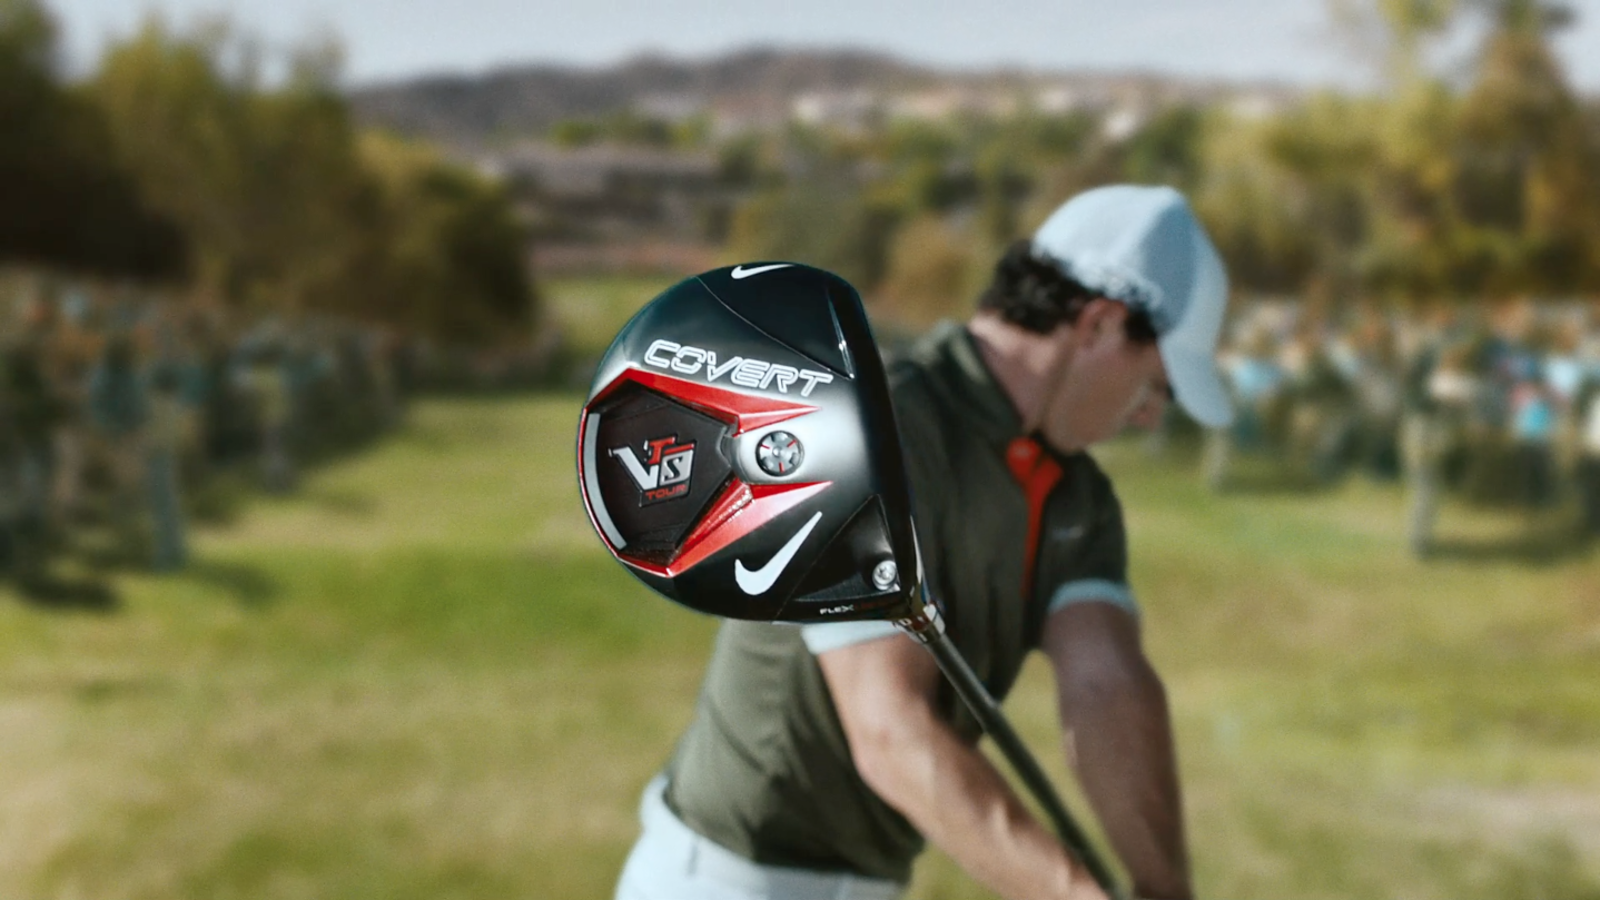 New Nike Golf Ad Features Rory McIlroy And The VR S Covert Driver